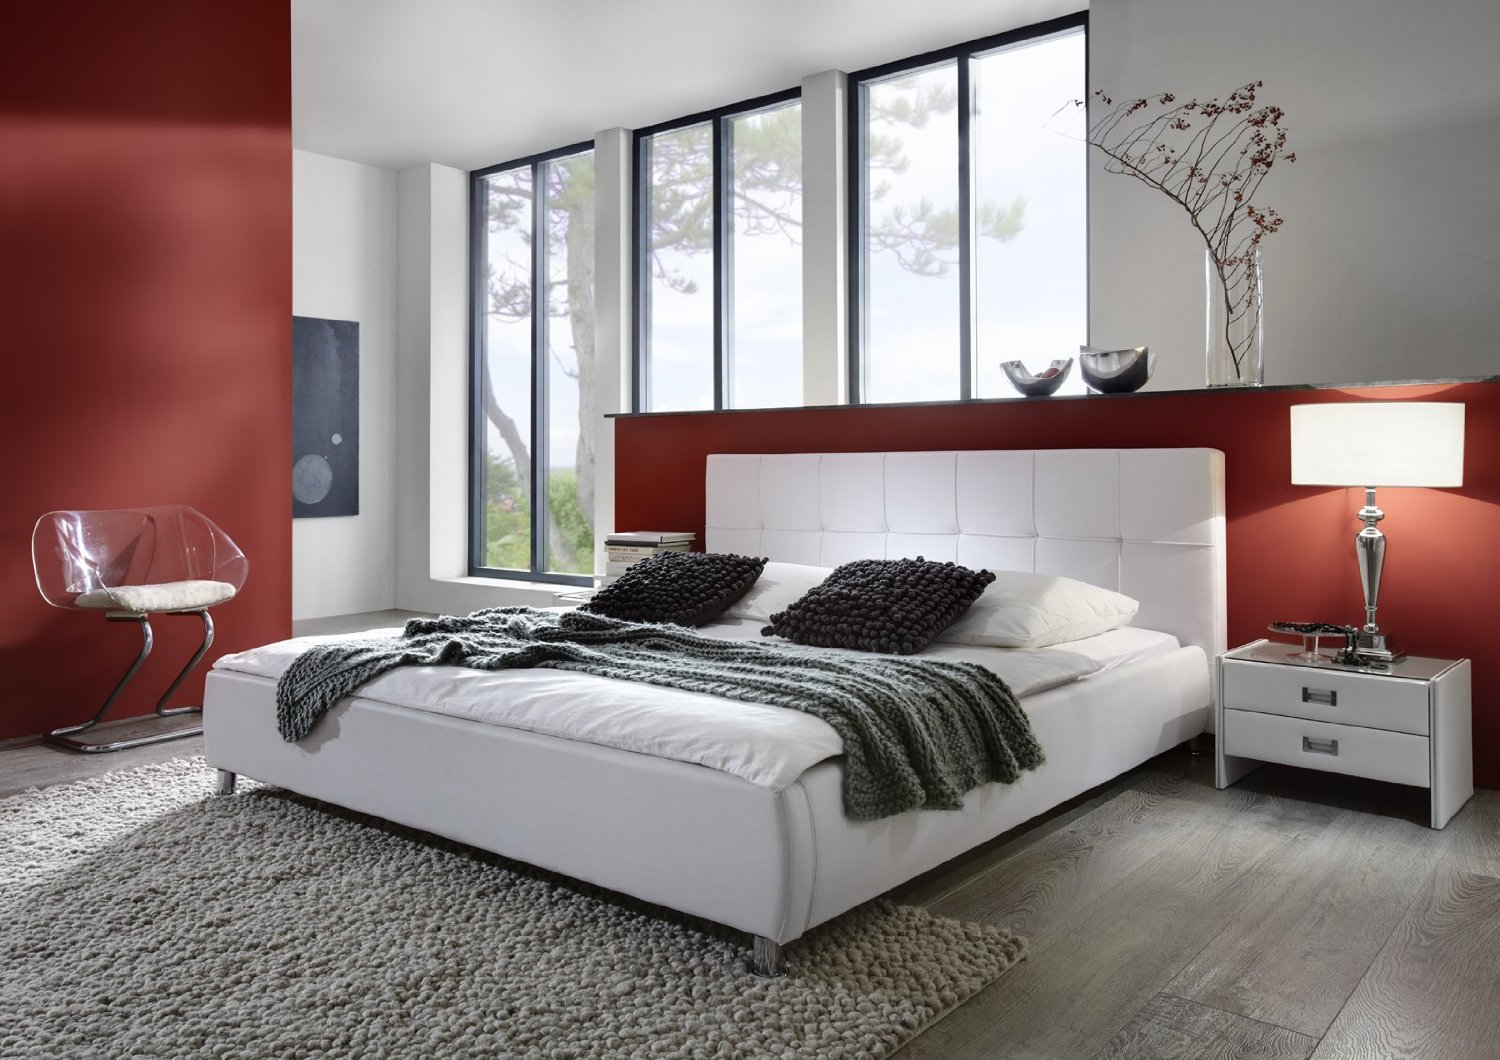 die besten matratzen im test. Black Bedroom Furniture Sets. Home Design Ideas